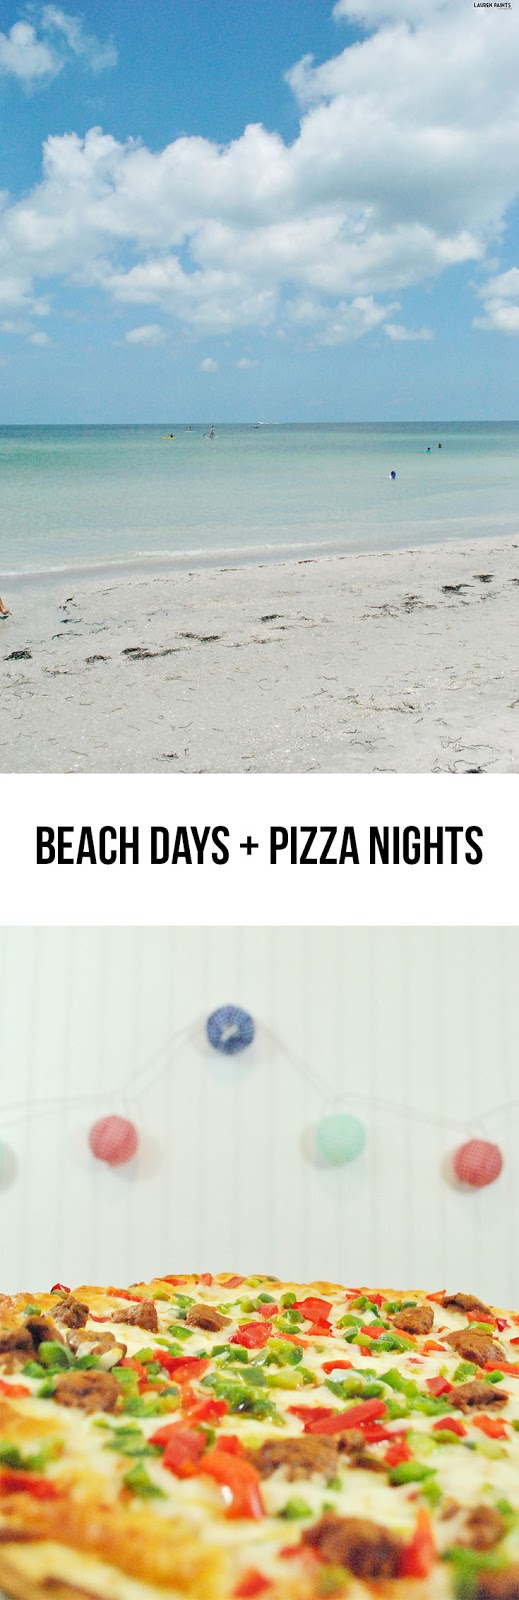 Beach Days and Pizza Nights - Dig Into Something Different with Tombstone!